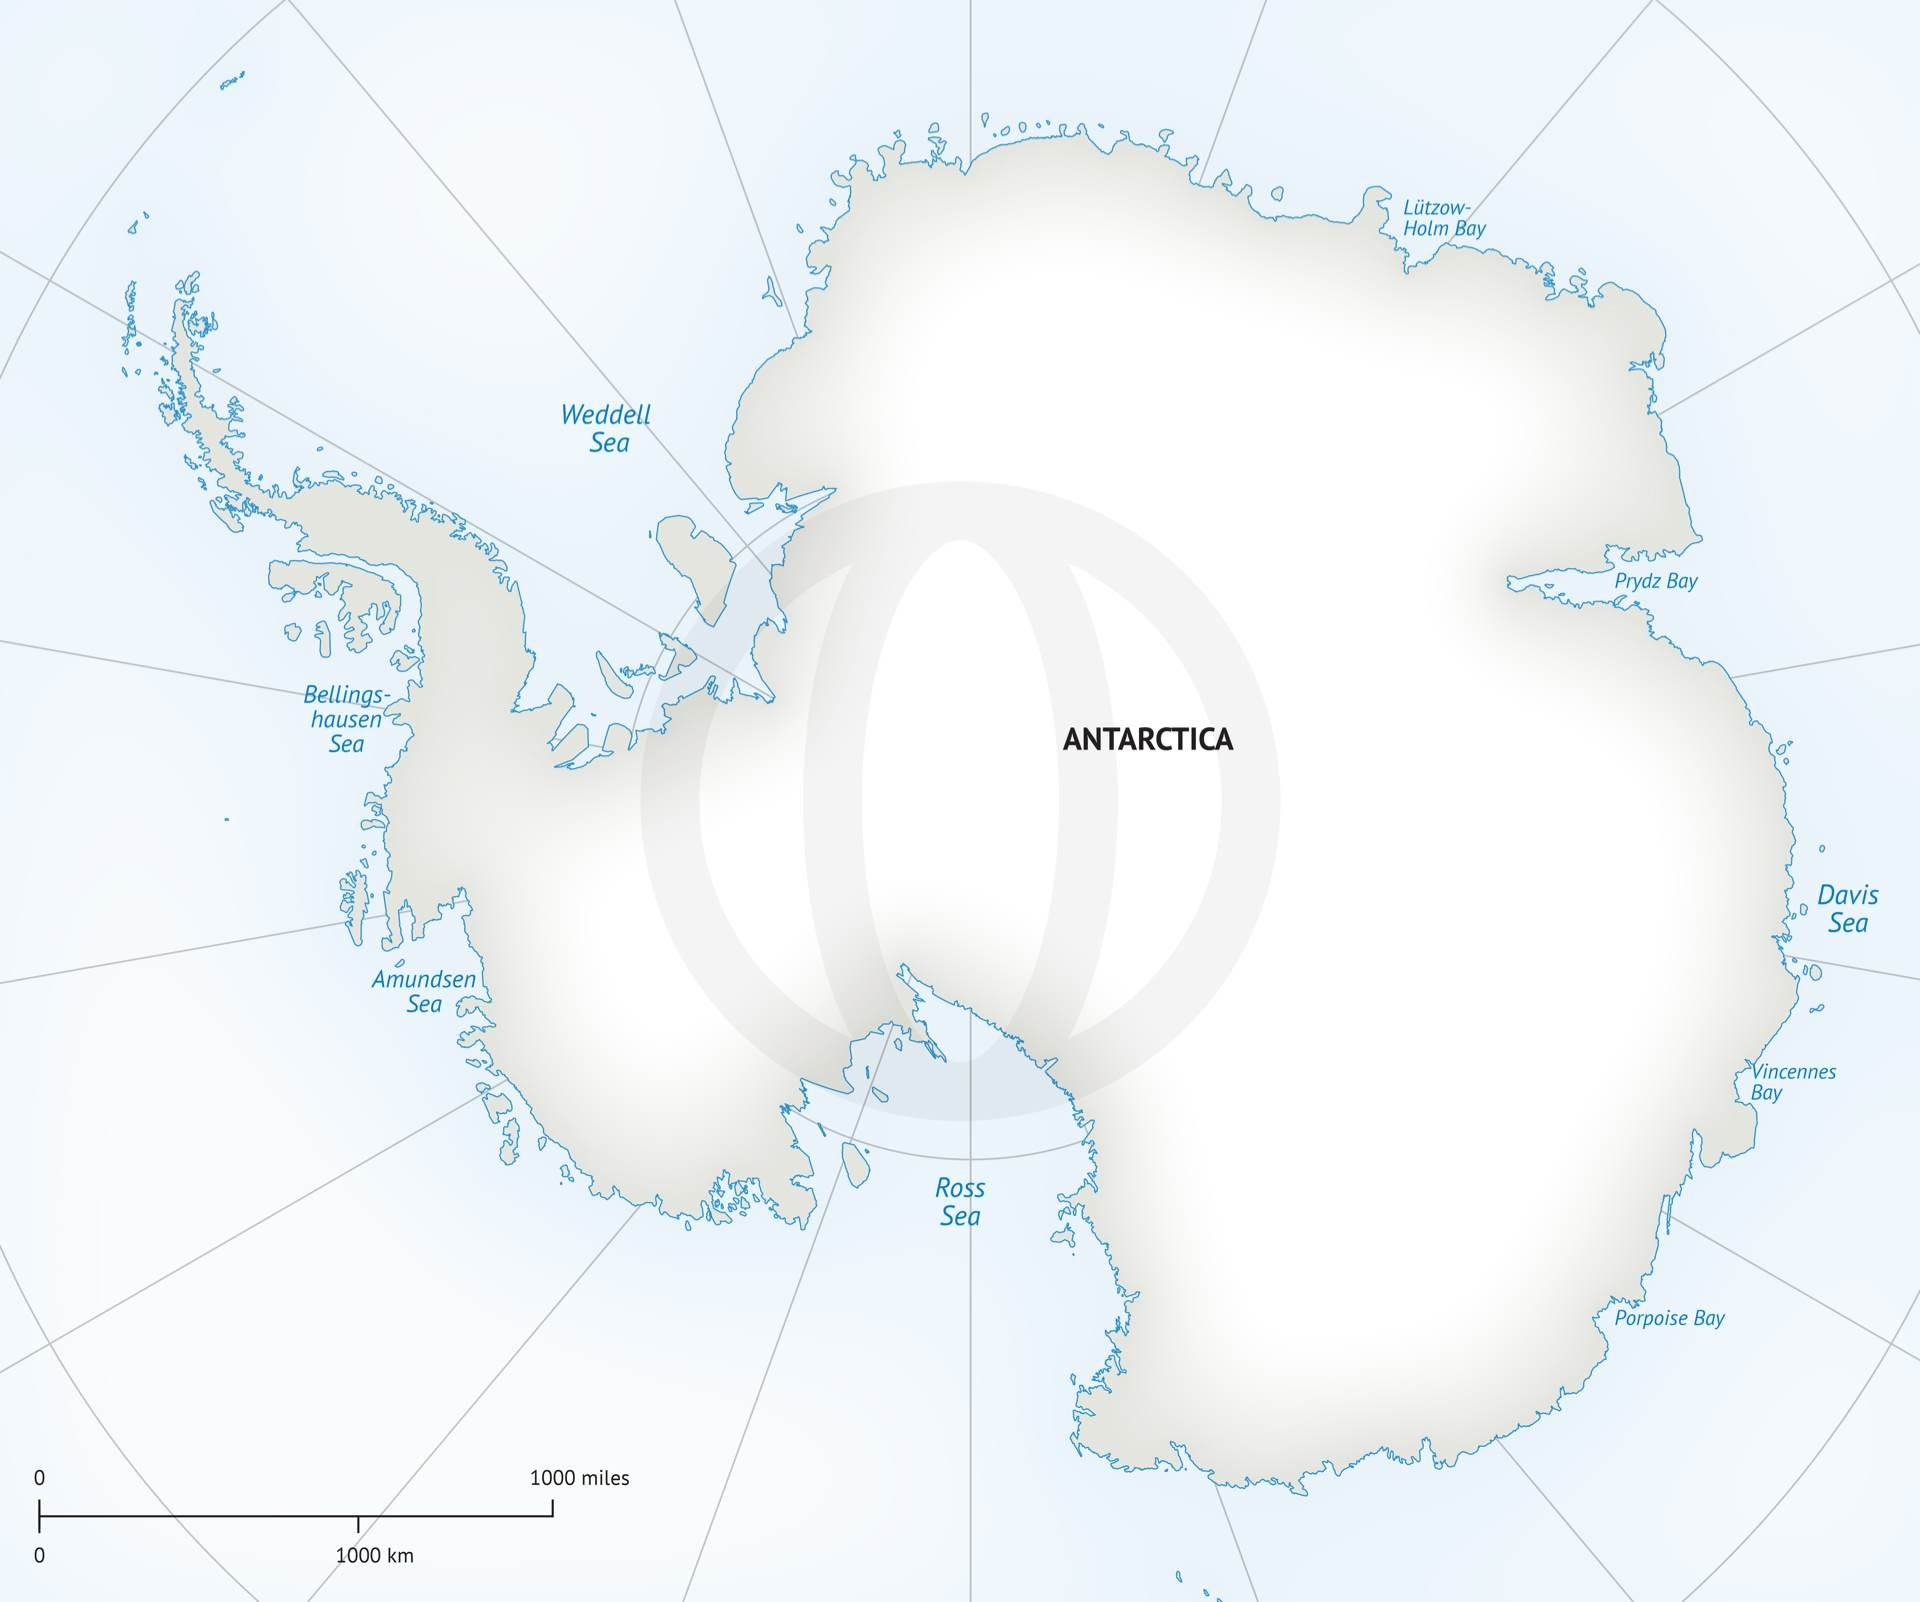 Vector Map Of Continent Antarctica Graphics Creative Market - Antarctica political map